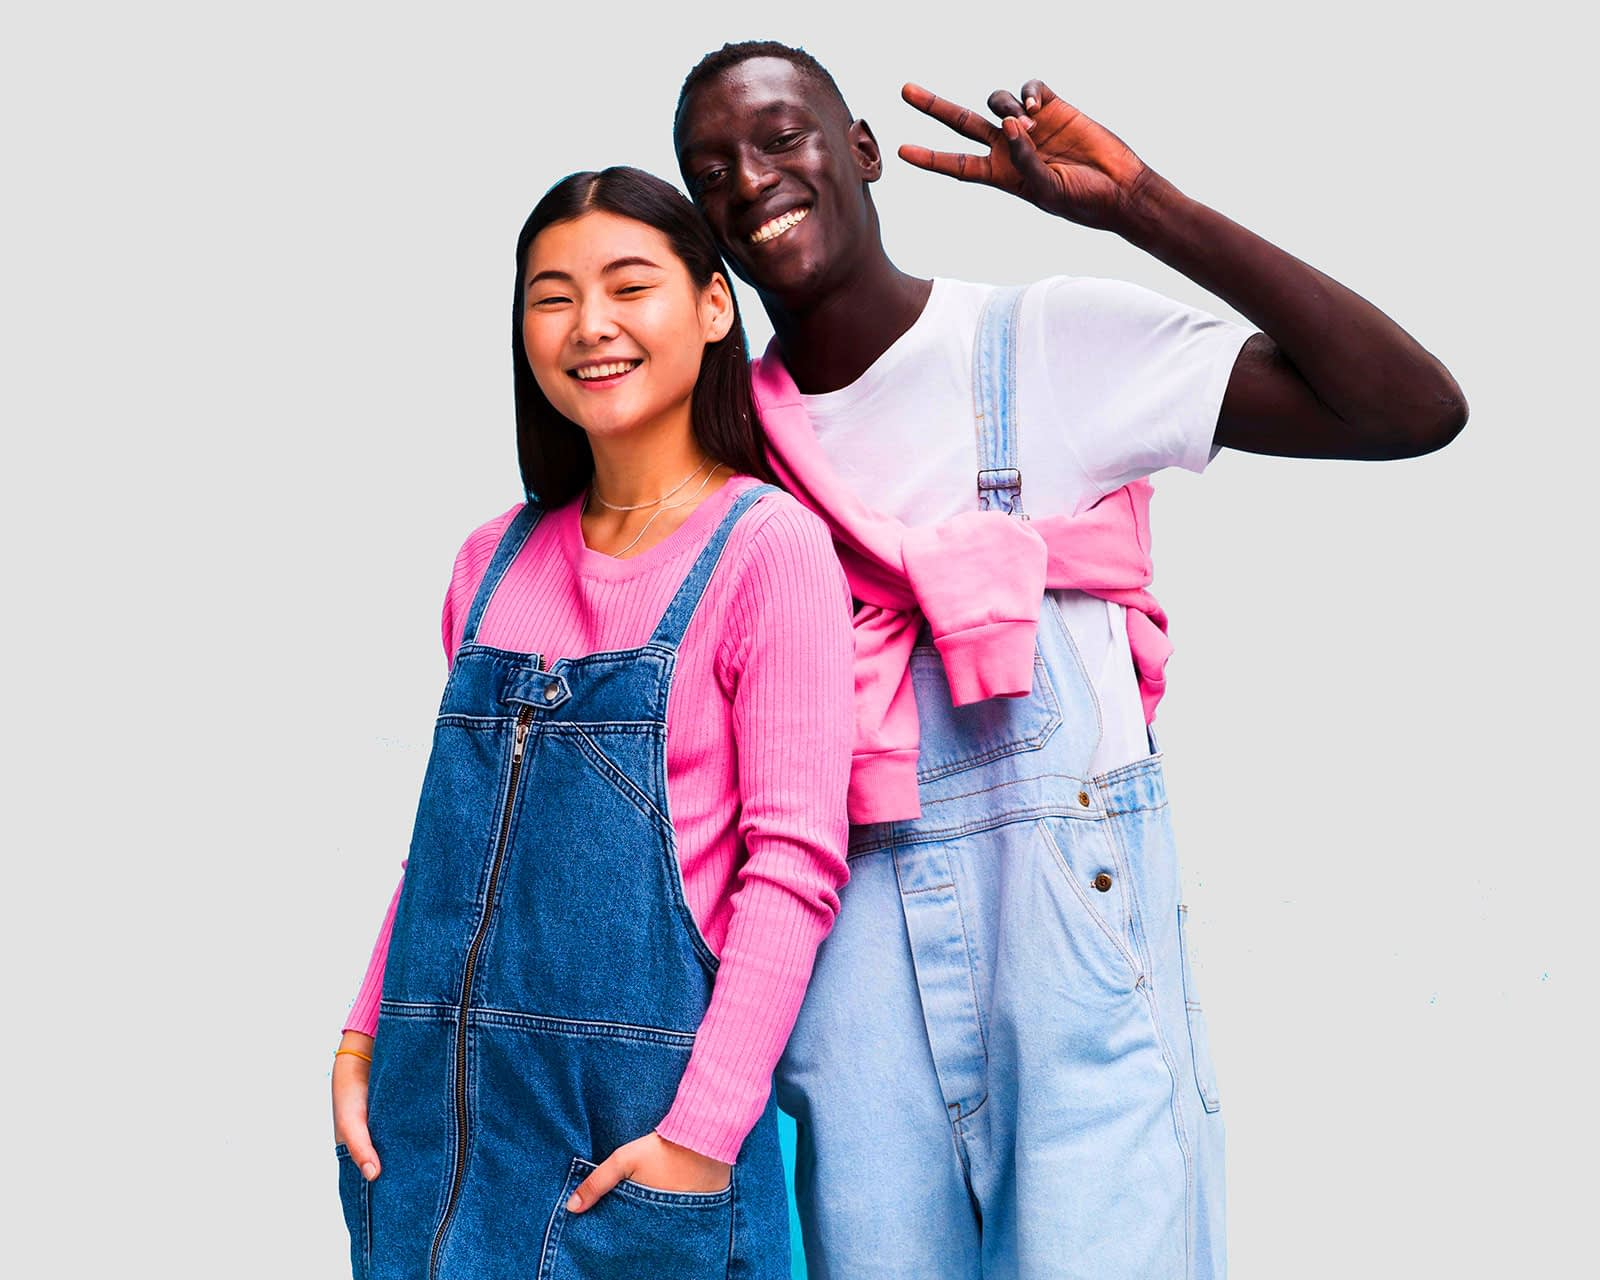 Happy interracial couple embracing and posing happily together.